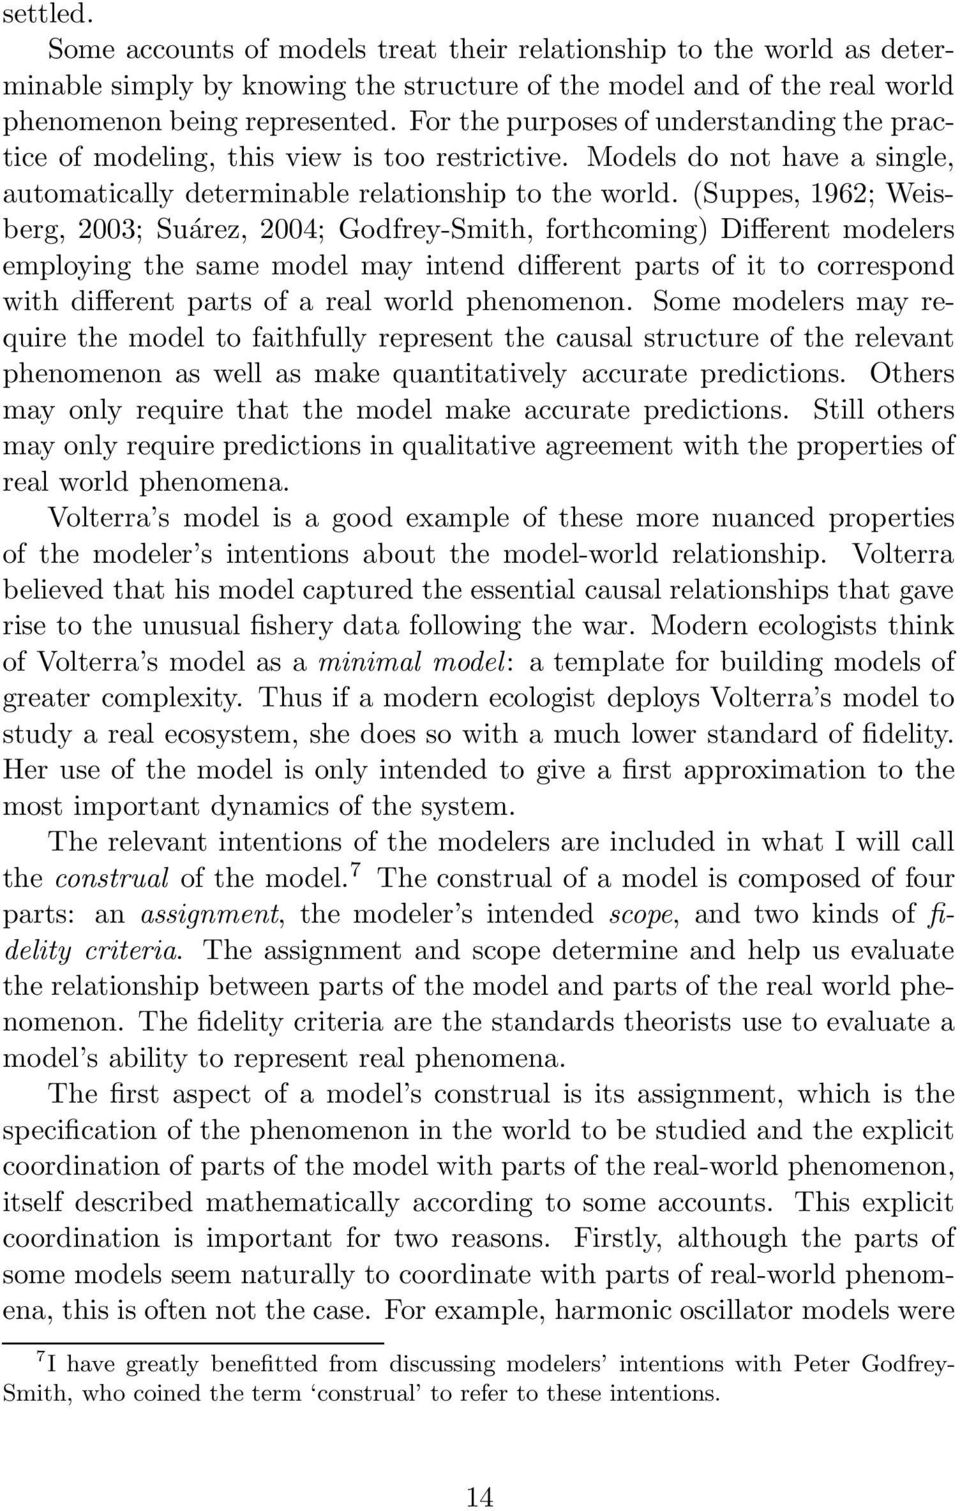 (Suppes, 1962; Weisberg, 2003; Suárez, 2004; Godfrey-Smith, forthcoming) Different modelers employing the same model may intend different parts of it to correspond with different parts of a real